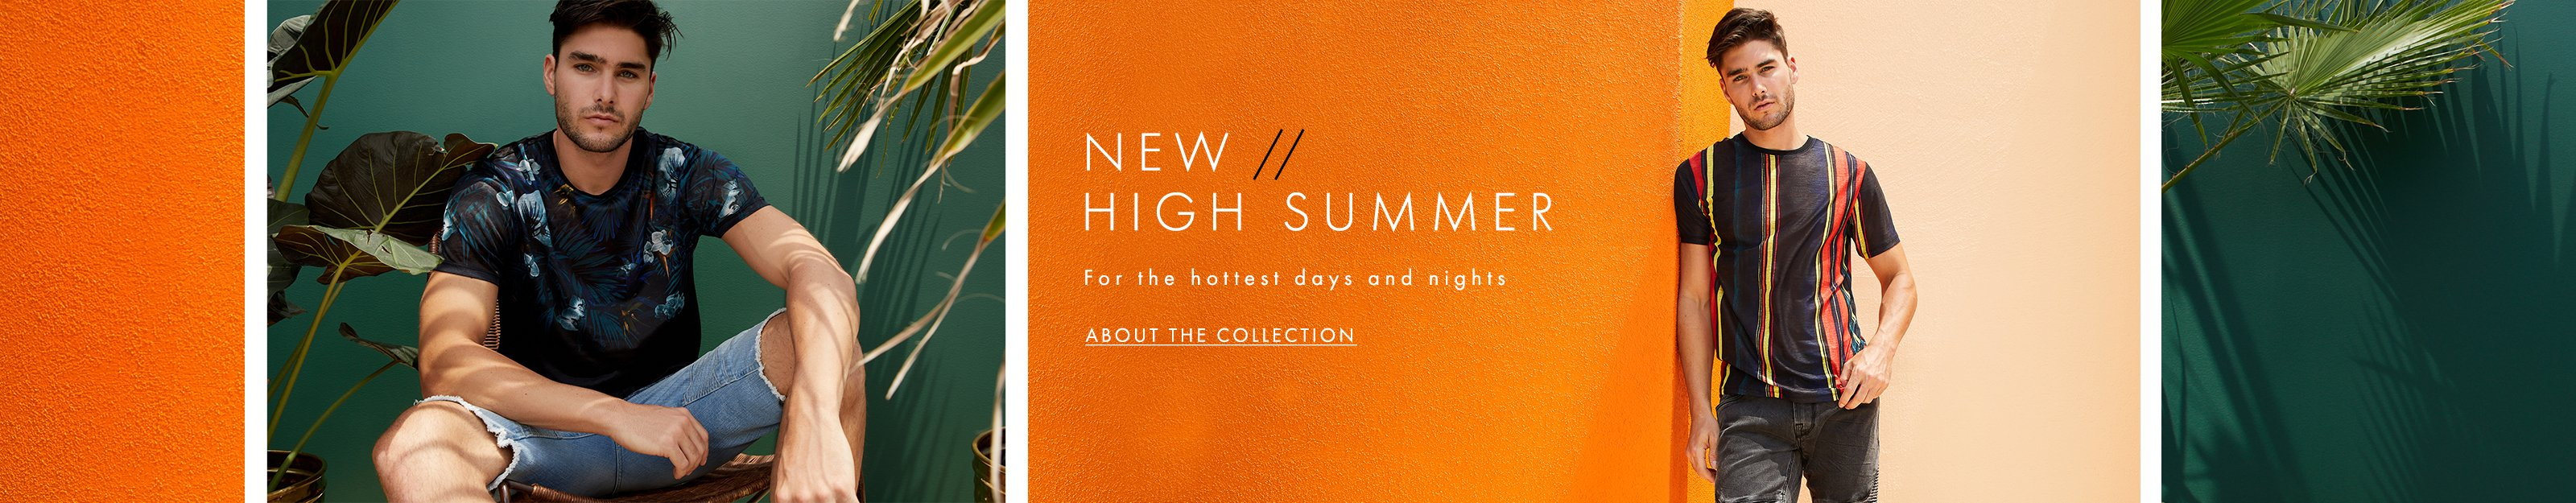 New High Summer